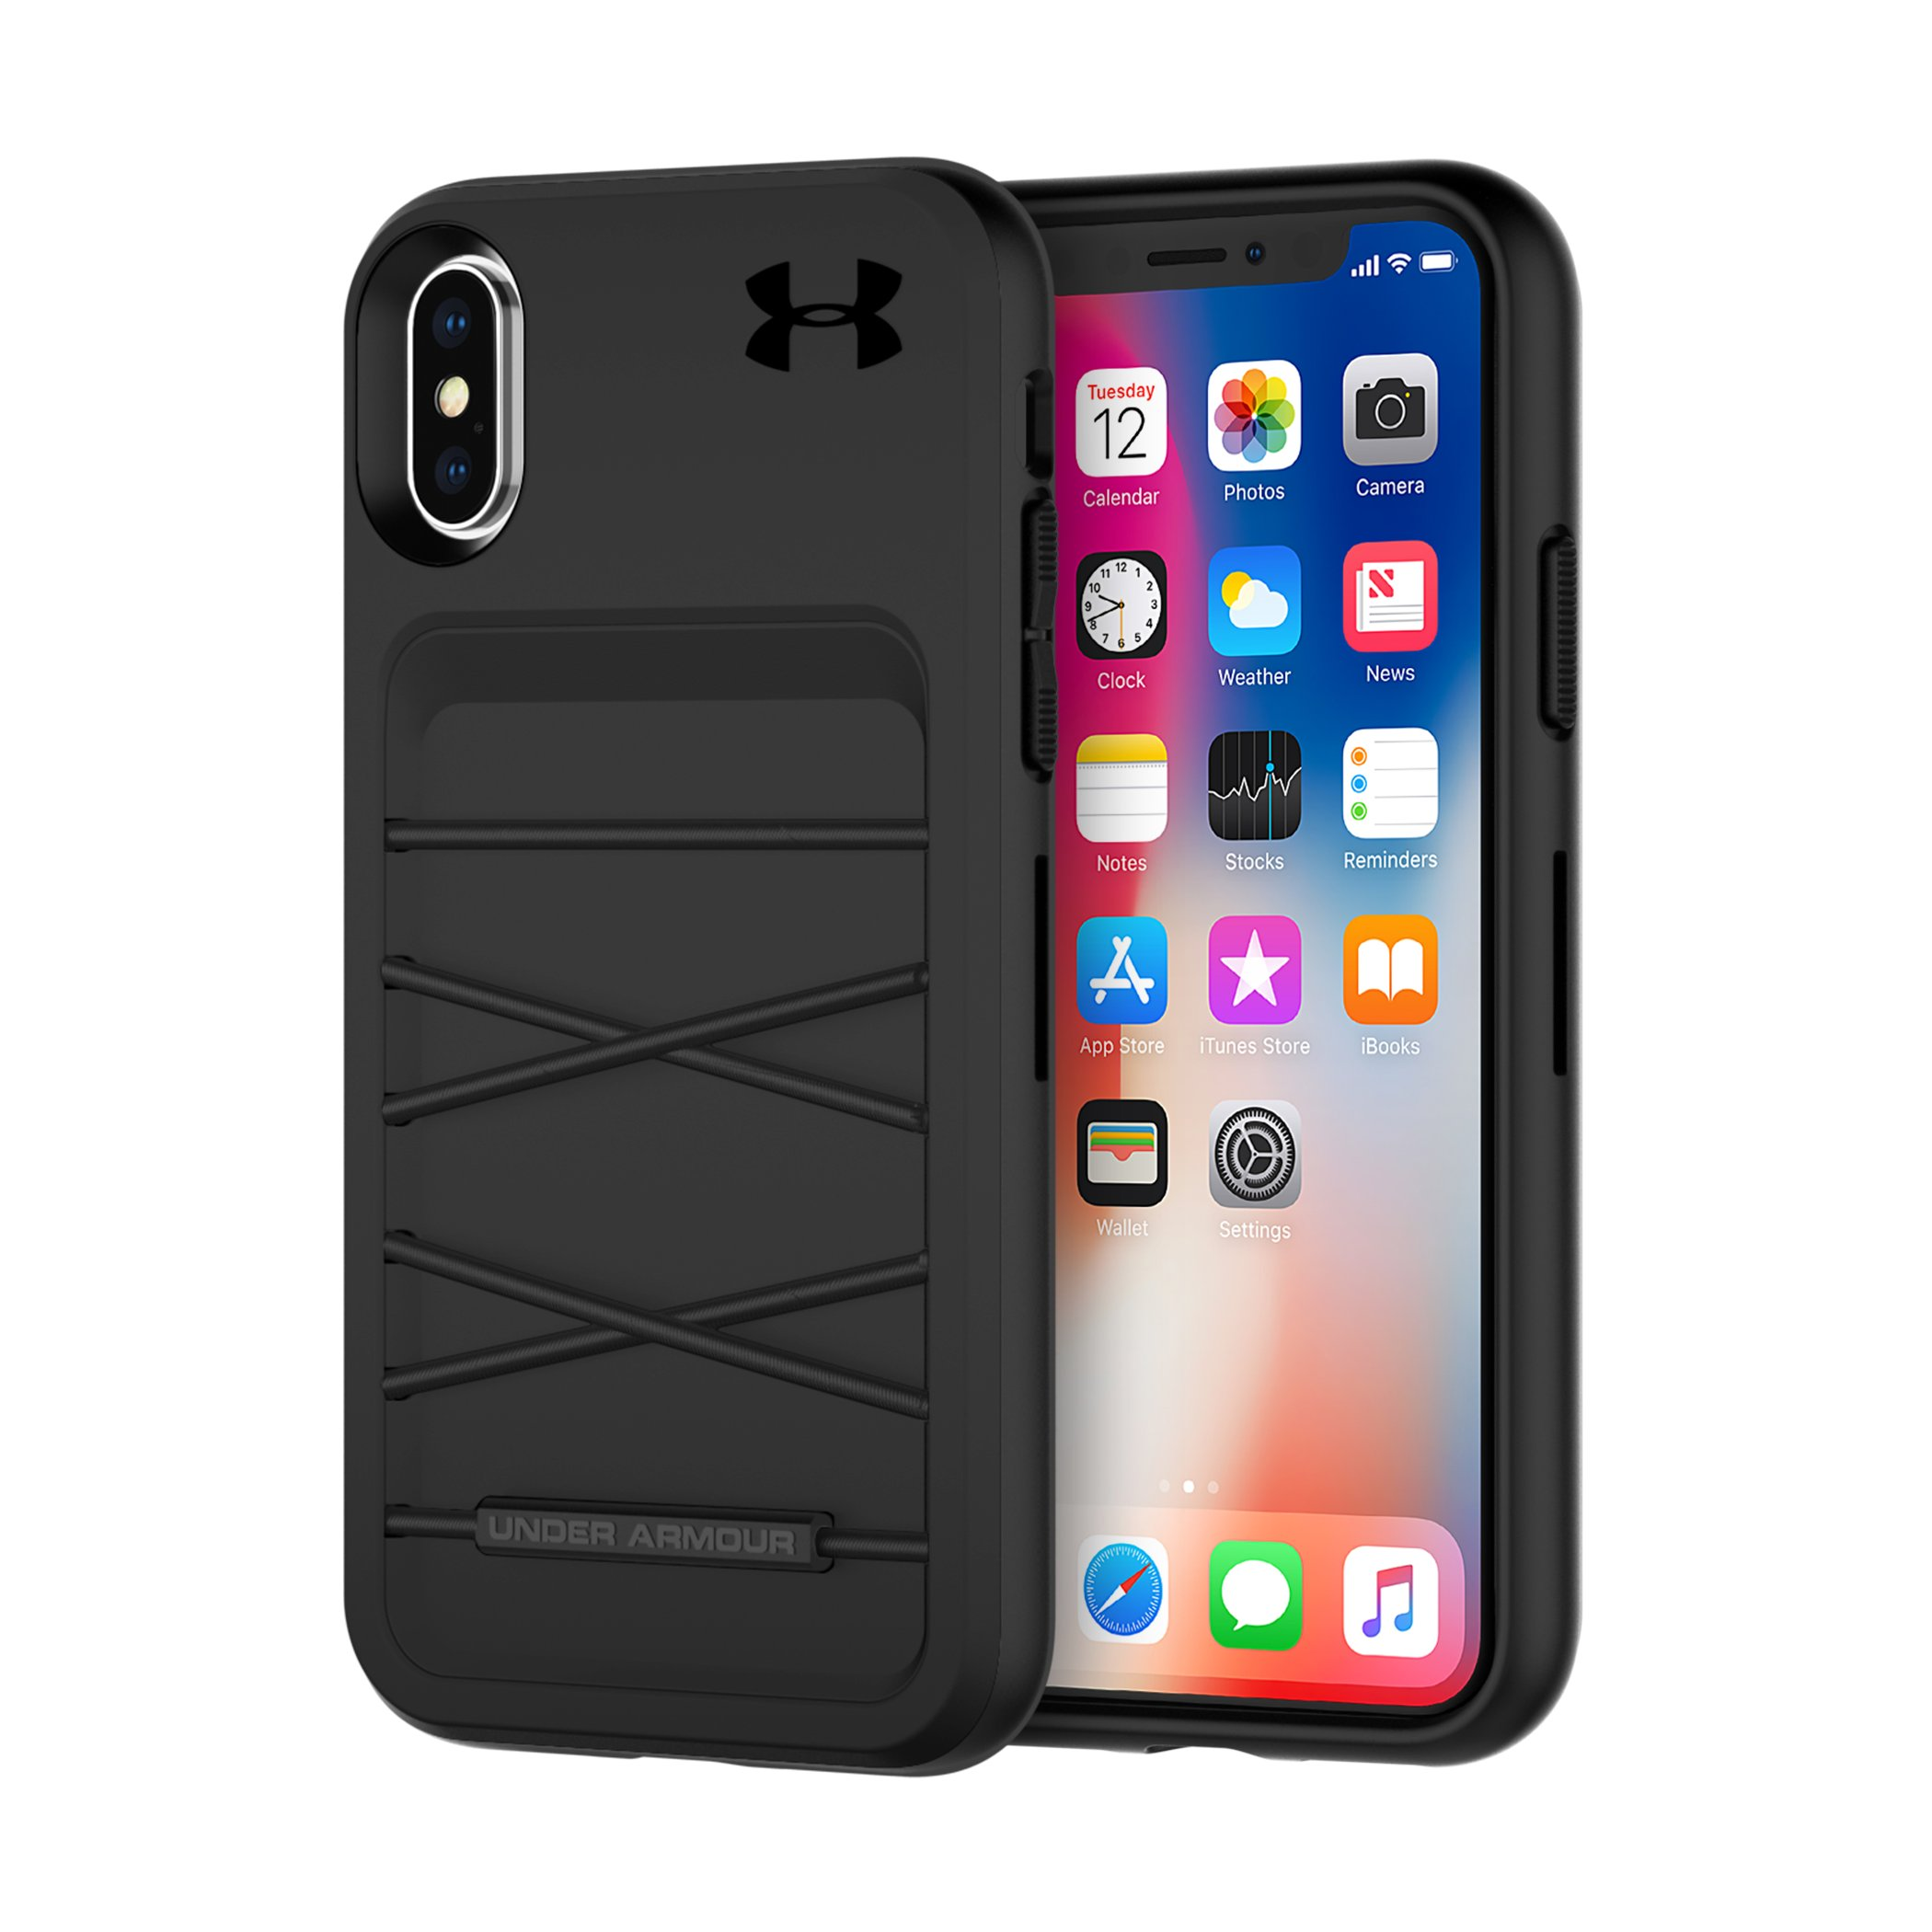 protection cases UA Protect Arsenal Case for iPhone X <strong>Protective</strong> <strong>button coverings</strong>.